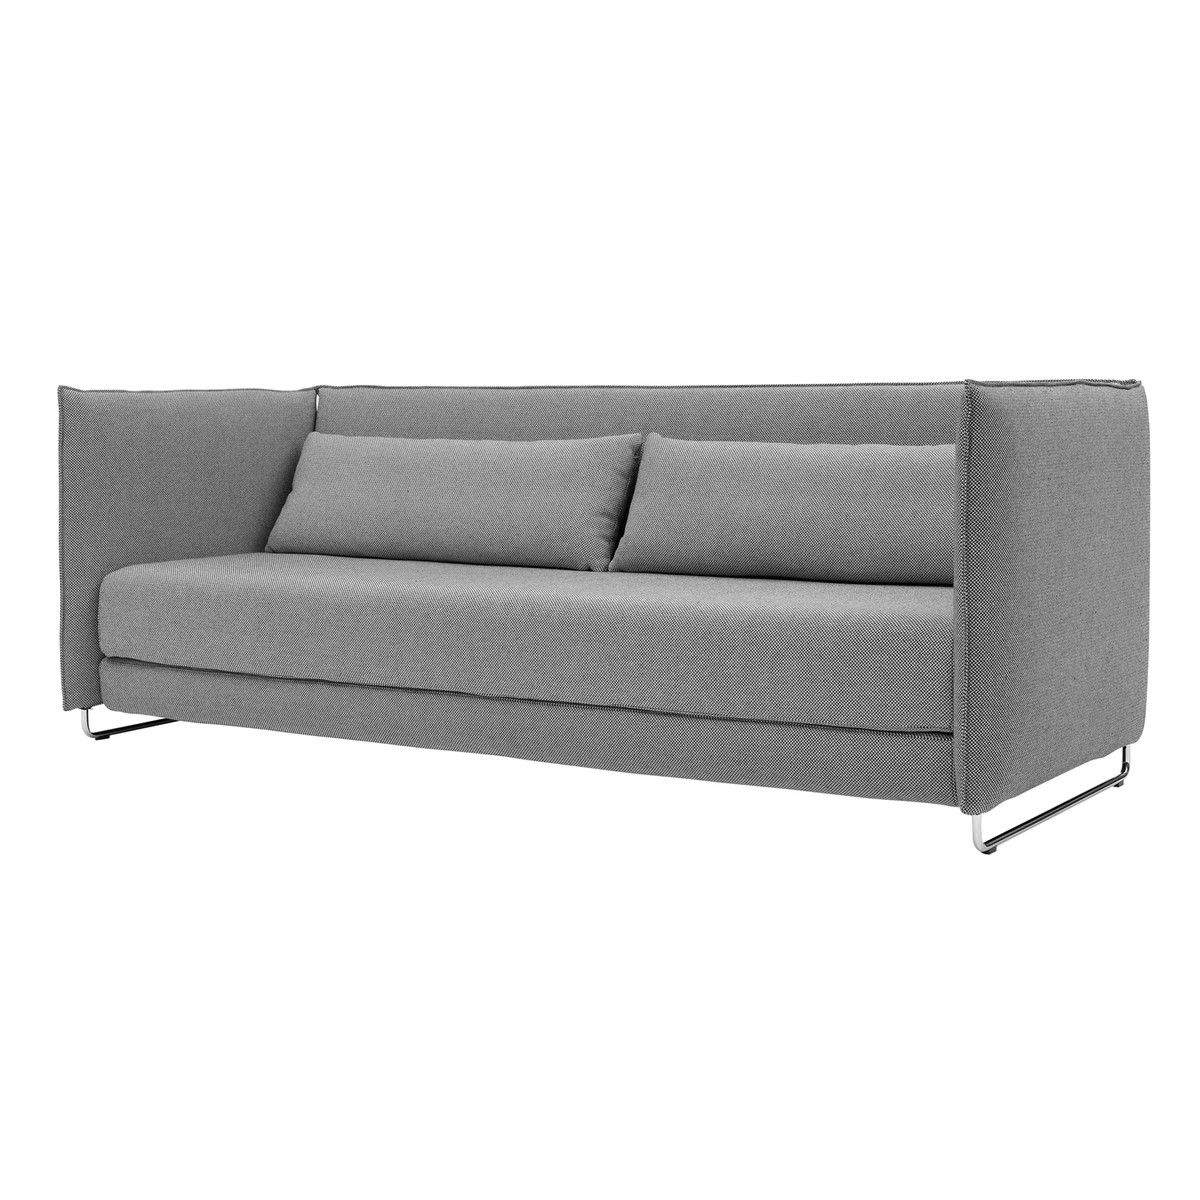 metro schlafsofa von softline im design shop sch ner wohnen 62 pinterest schlafsofa. Black Bedroom Furniture Sets. Home Design Ideas